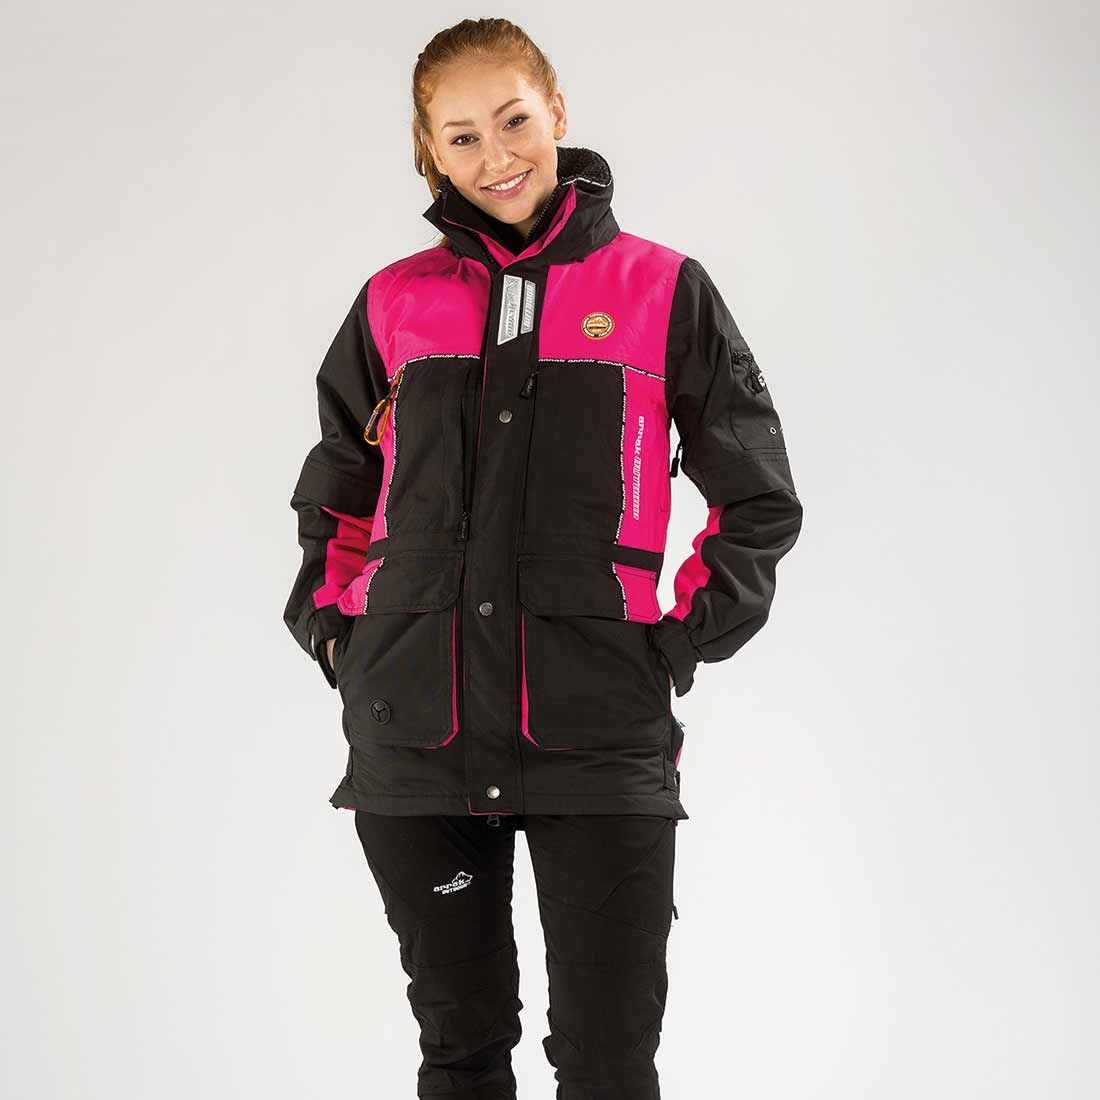 Arrak New Original Jacket Pink/Black XS